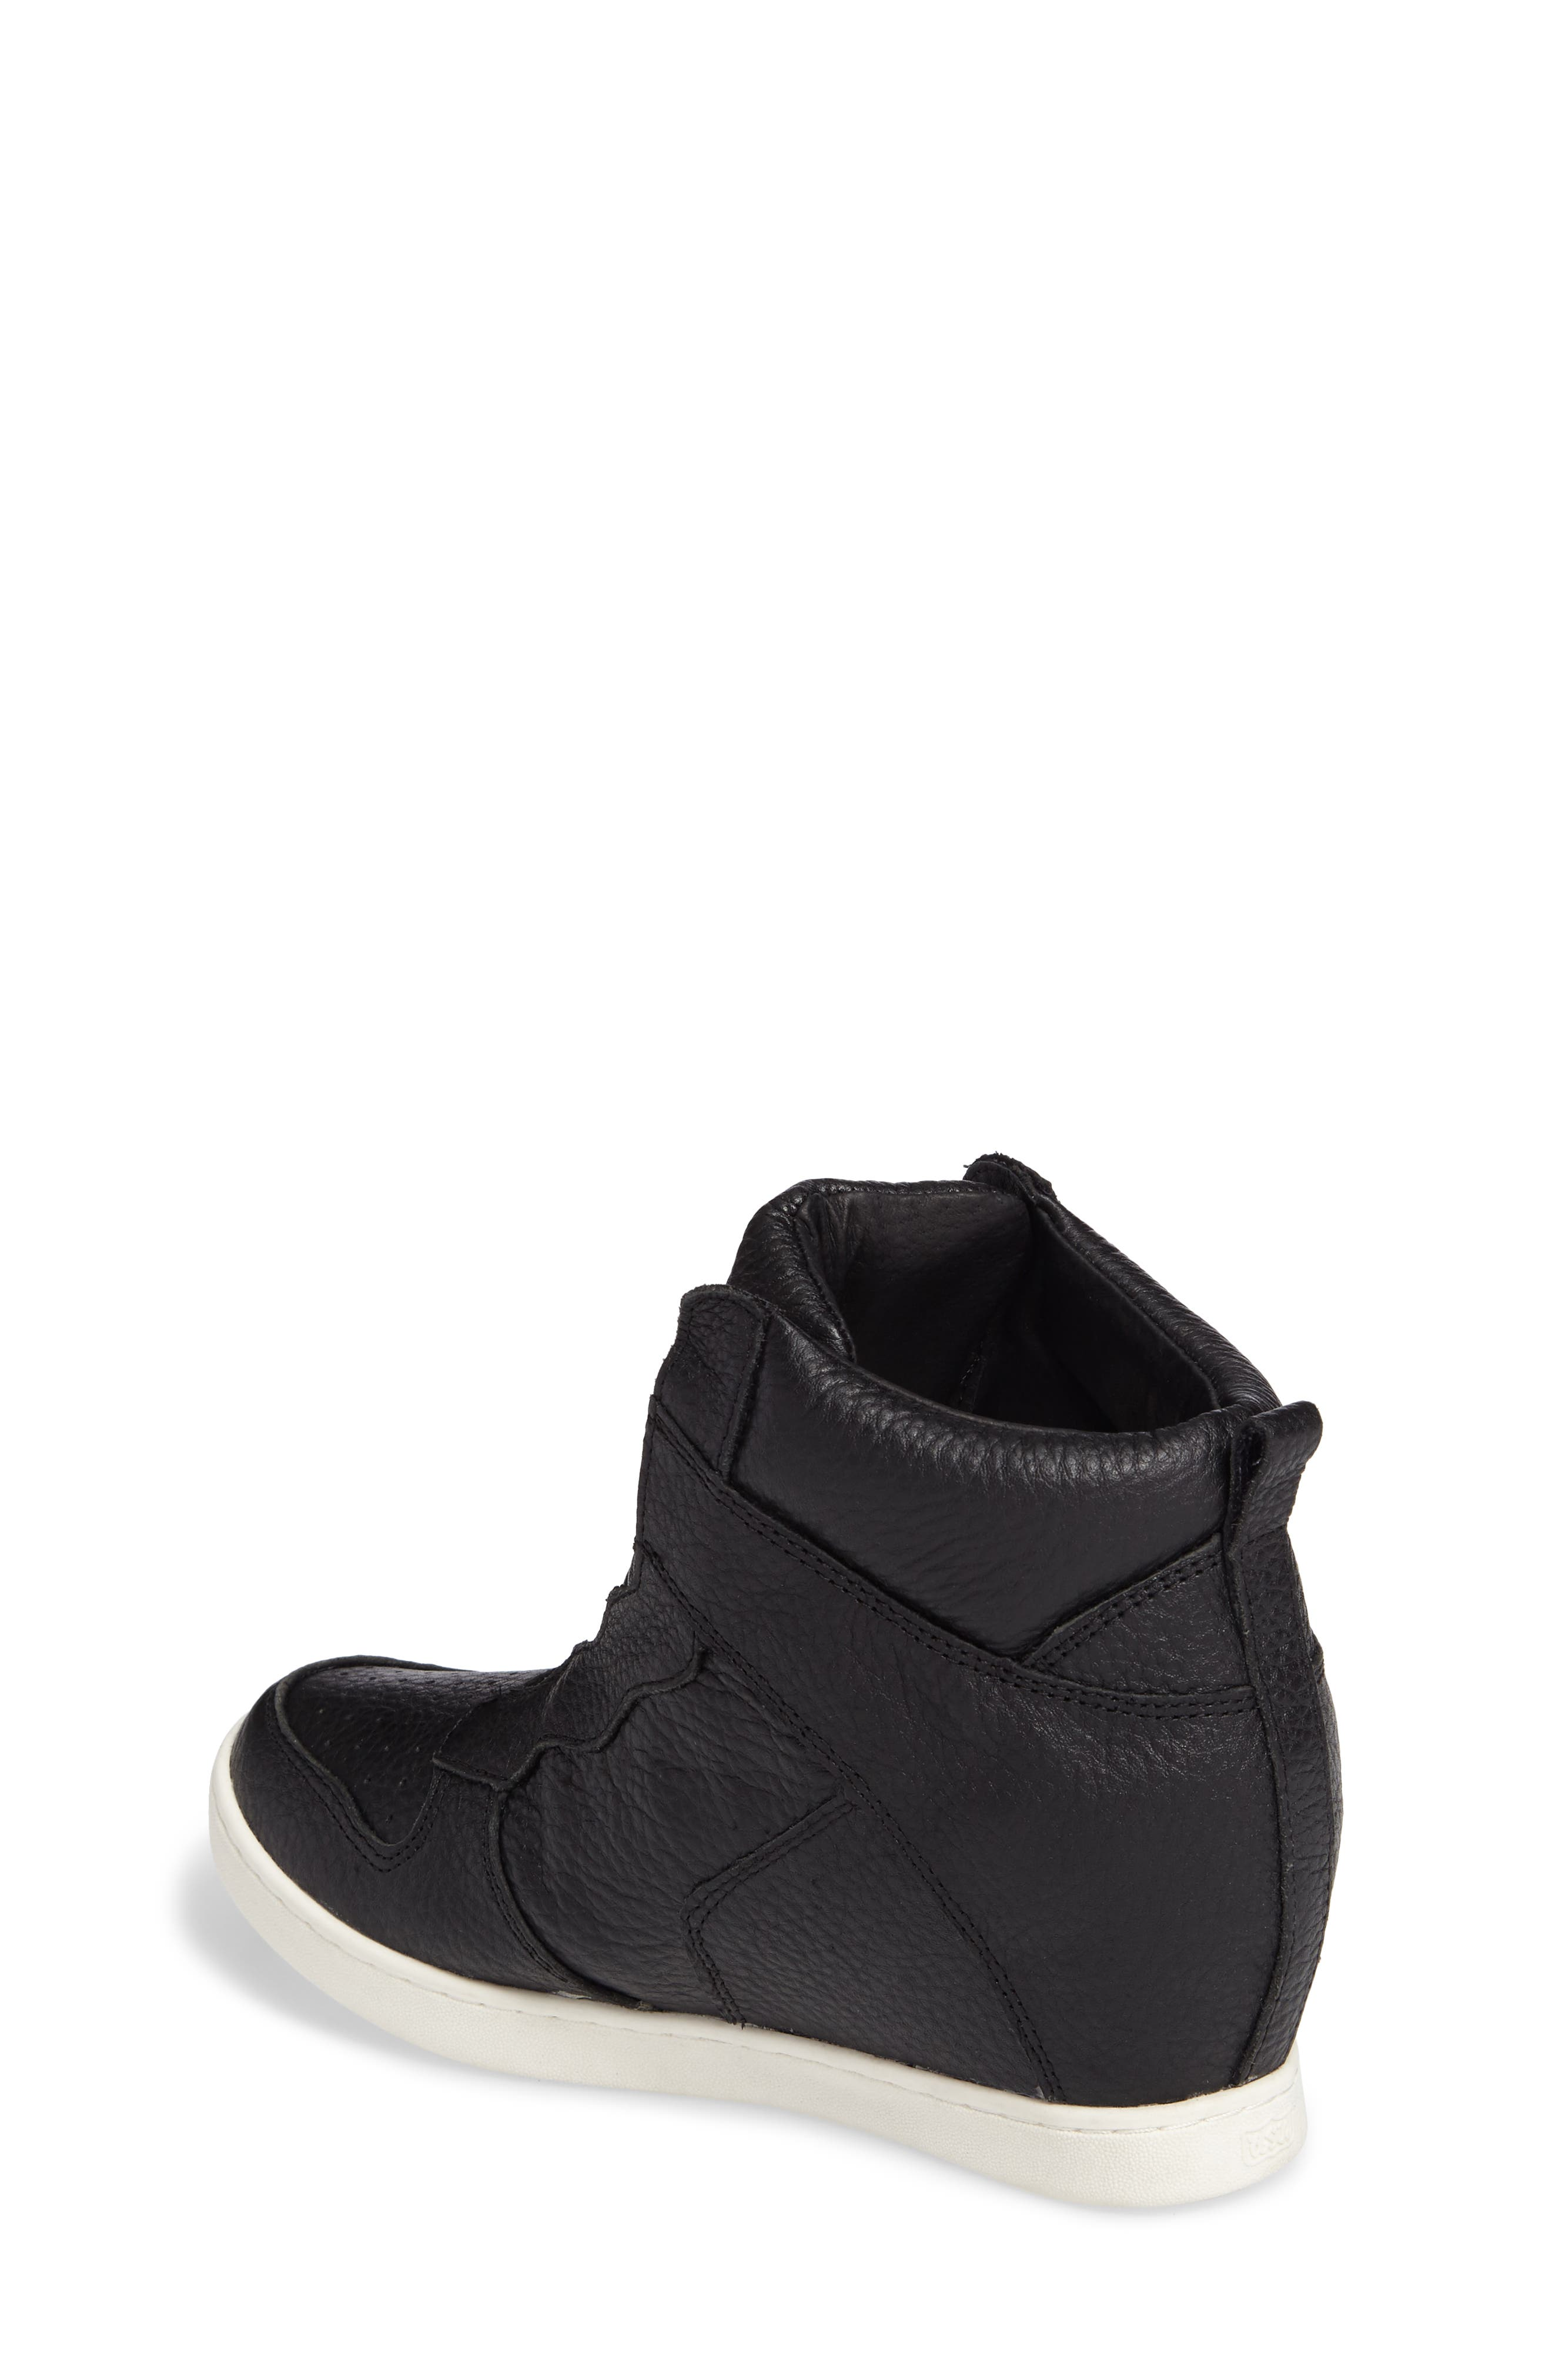 Alternate Image 2  - Ash Syndey Laceless Concealed Wedge Bootie (Toddler, Little Kid & Big Kid)